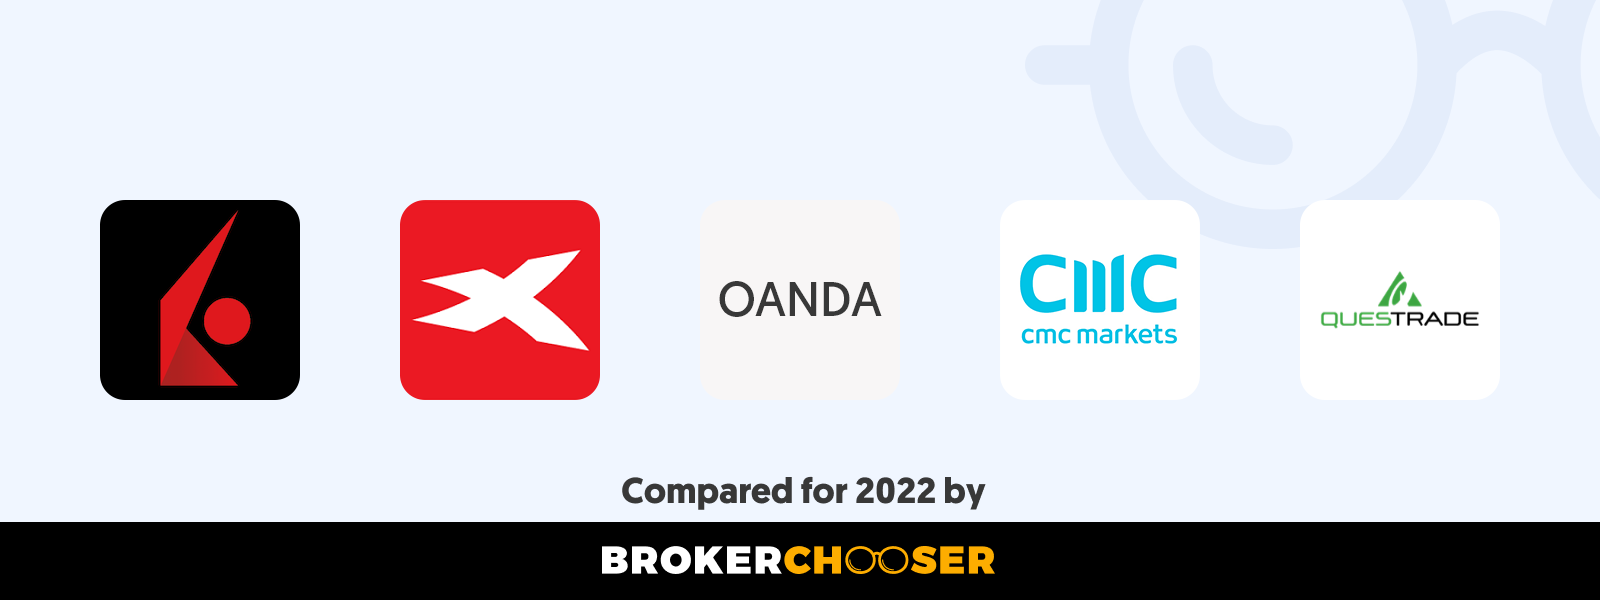 Best international online brokers for citizens in Canada